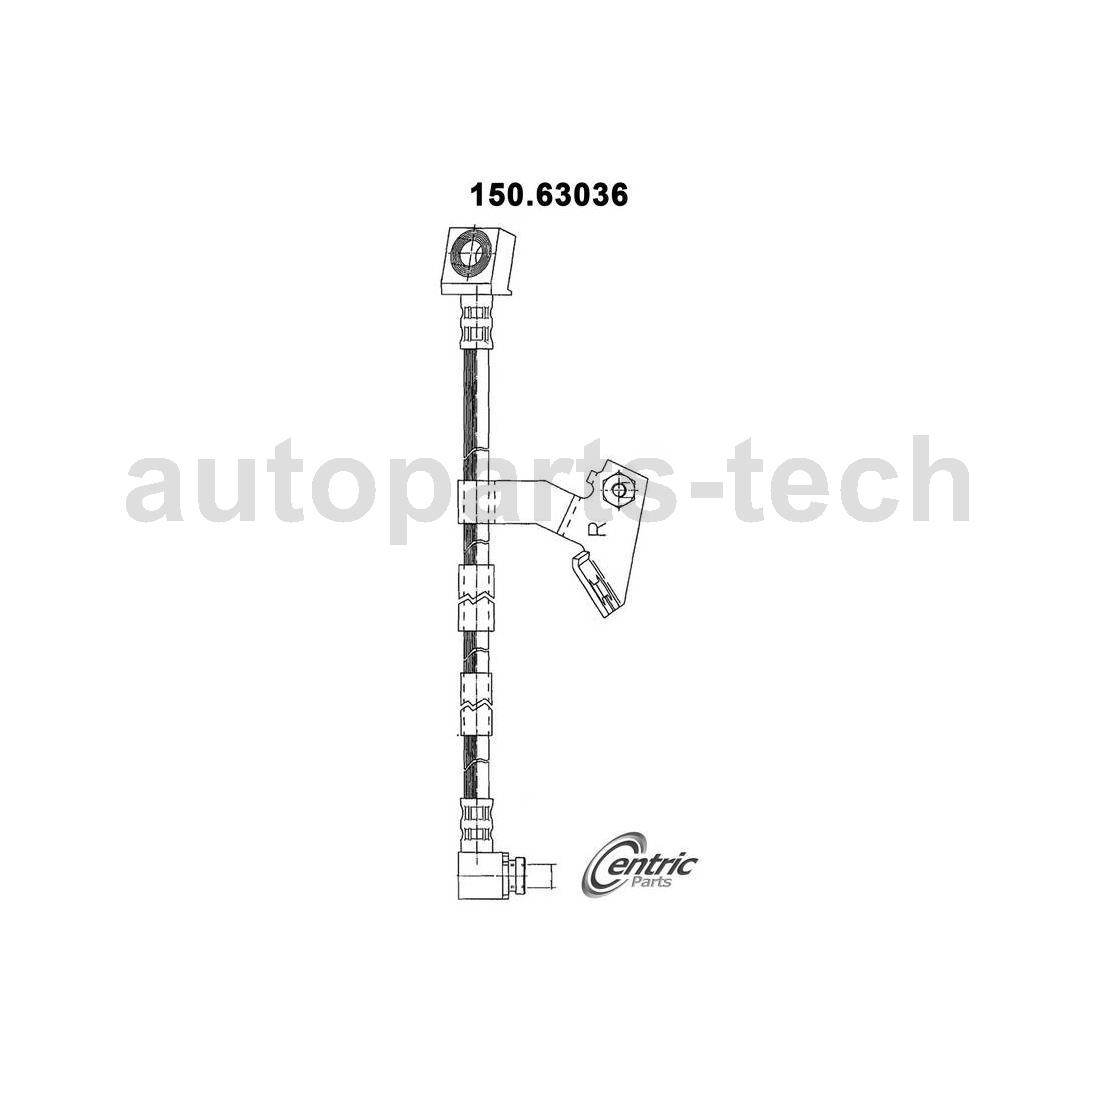 4x Centric Parts Rear Front Brake Hydraulic Hose For